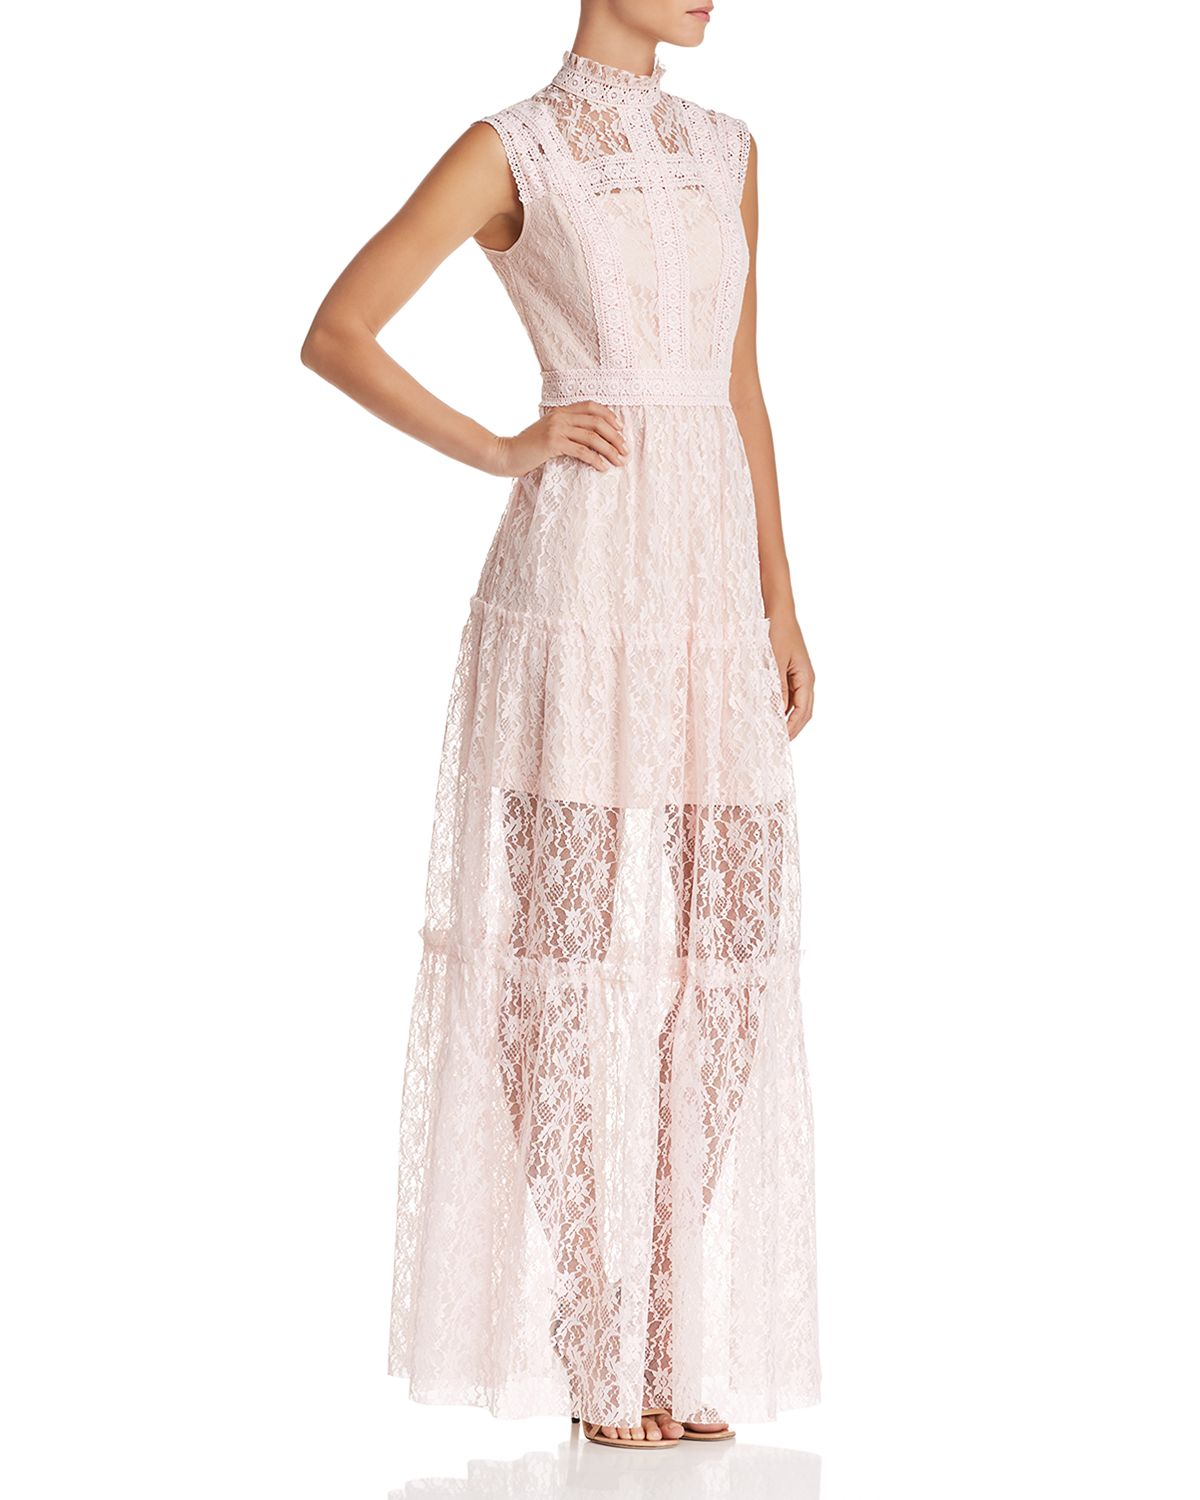 Tiered Lace Maxi Dress   100 Percents Exclusive by Aqua